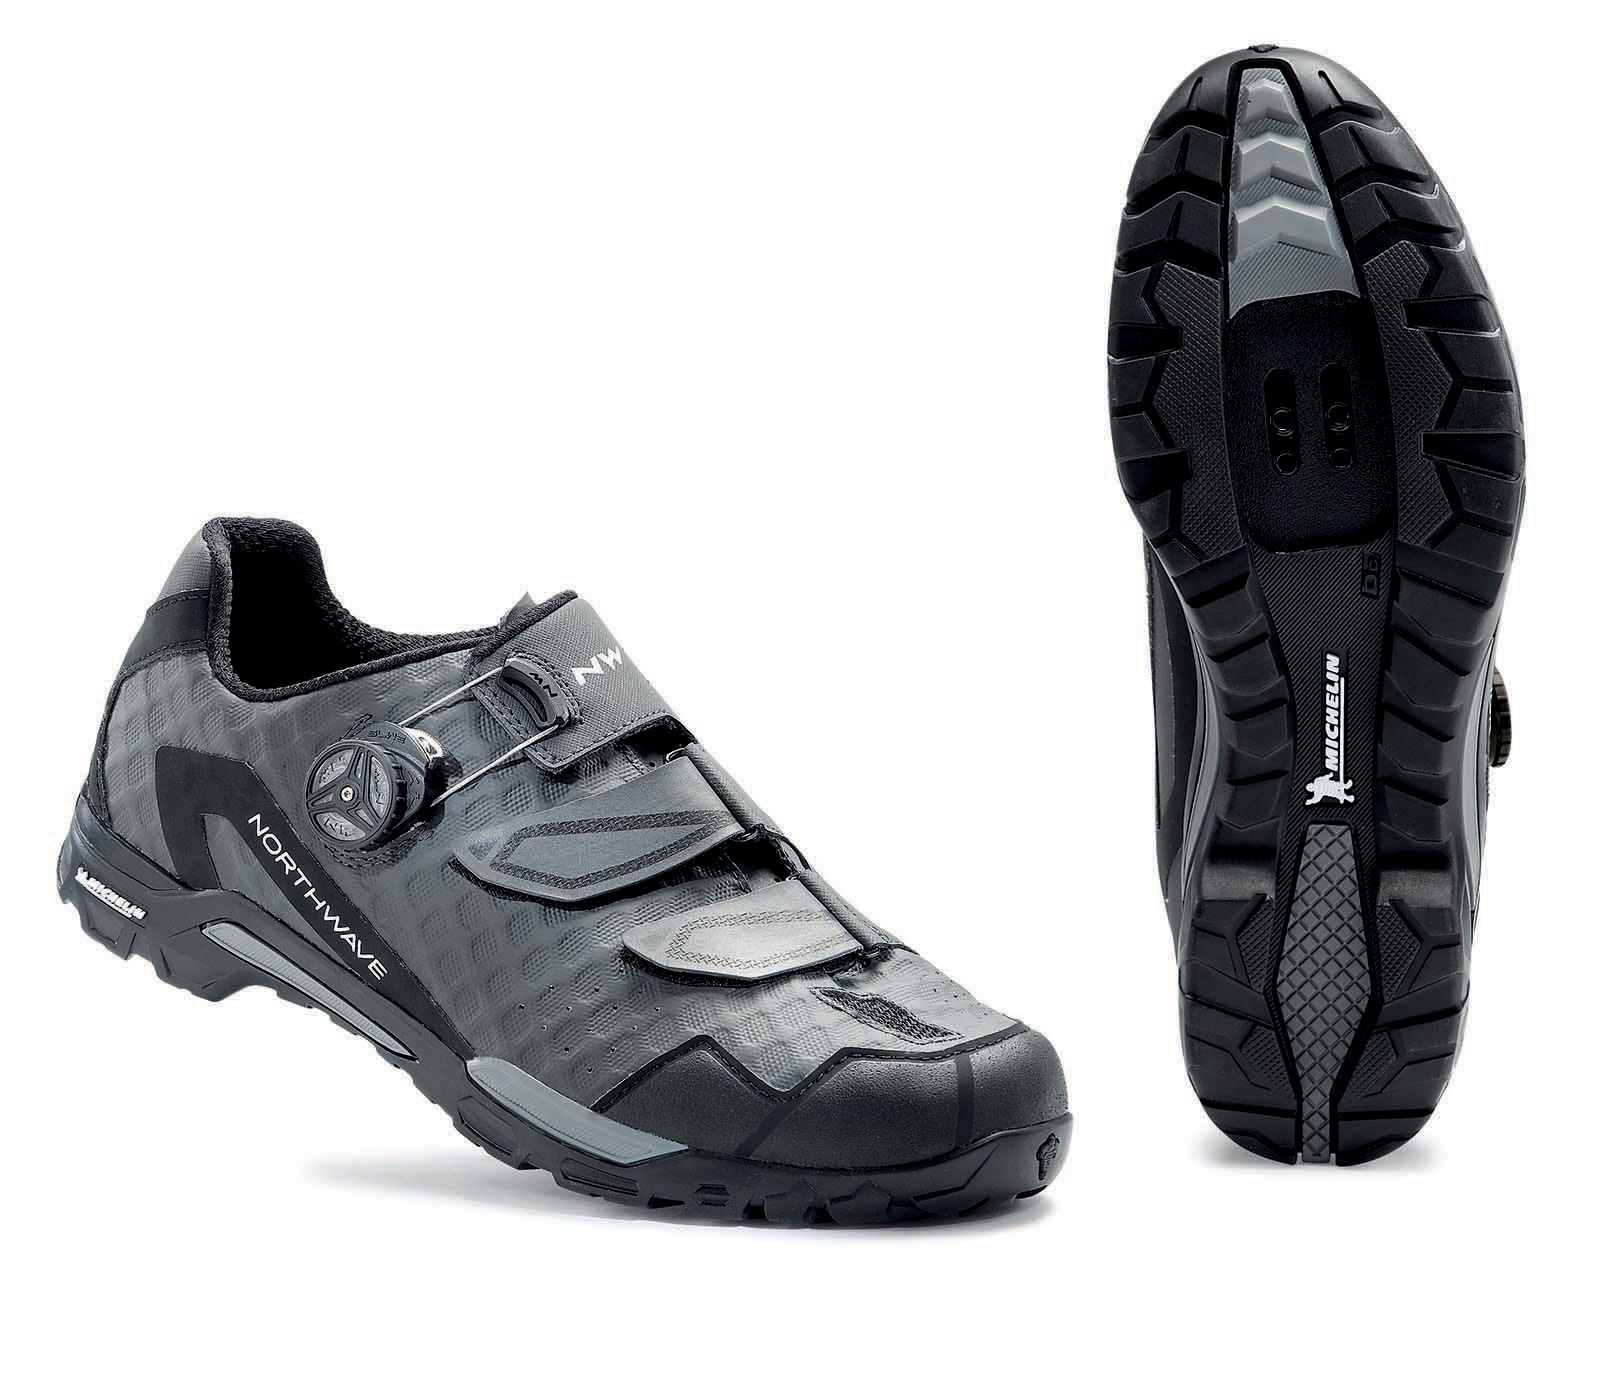 NORTHWAVE Man MTB trail shoes OUTCROSS PLUS anthracite grey/black